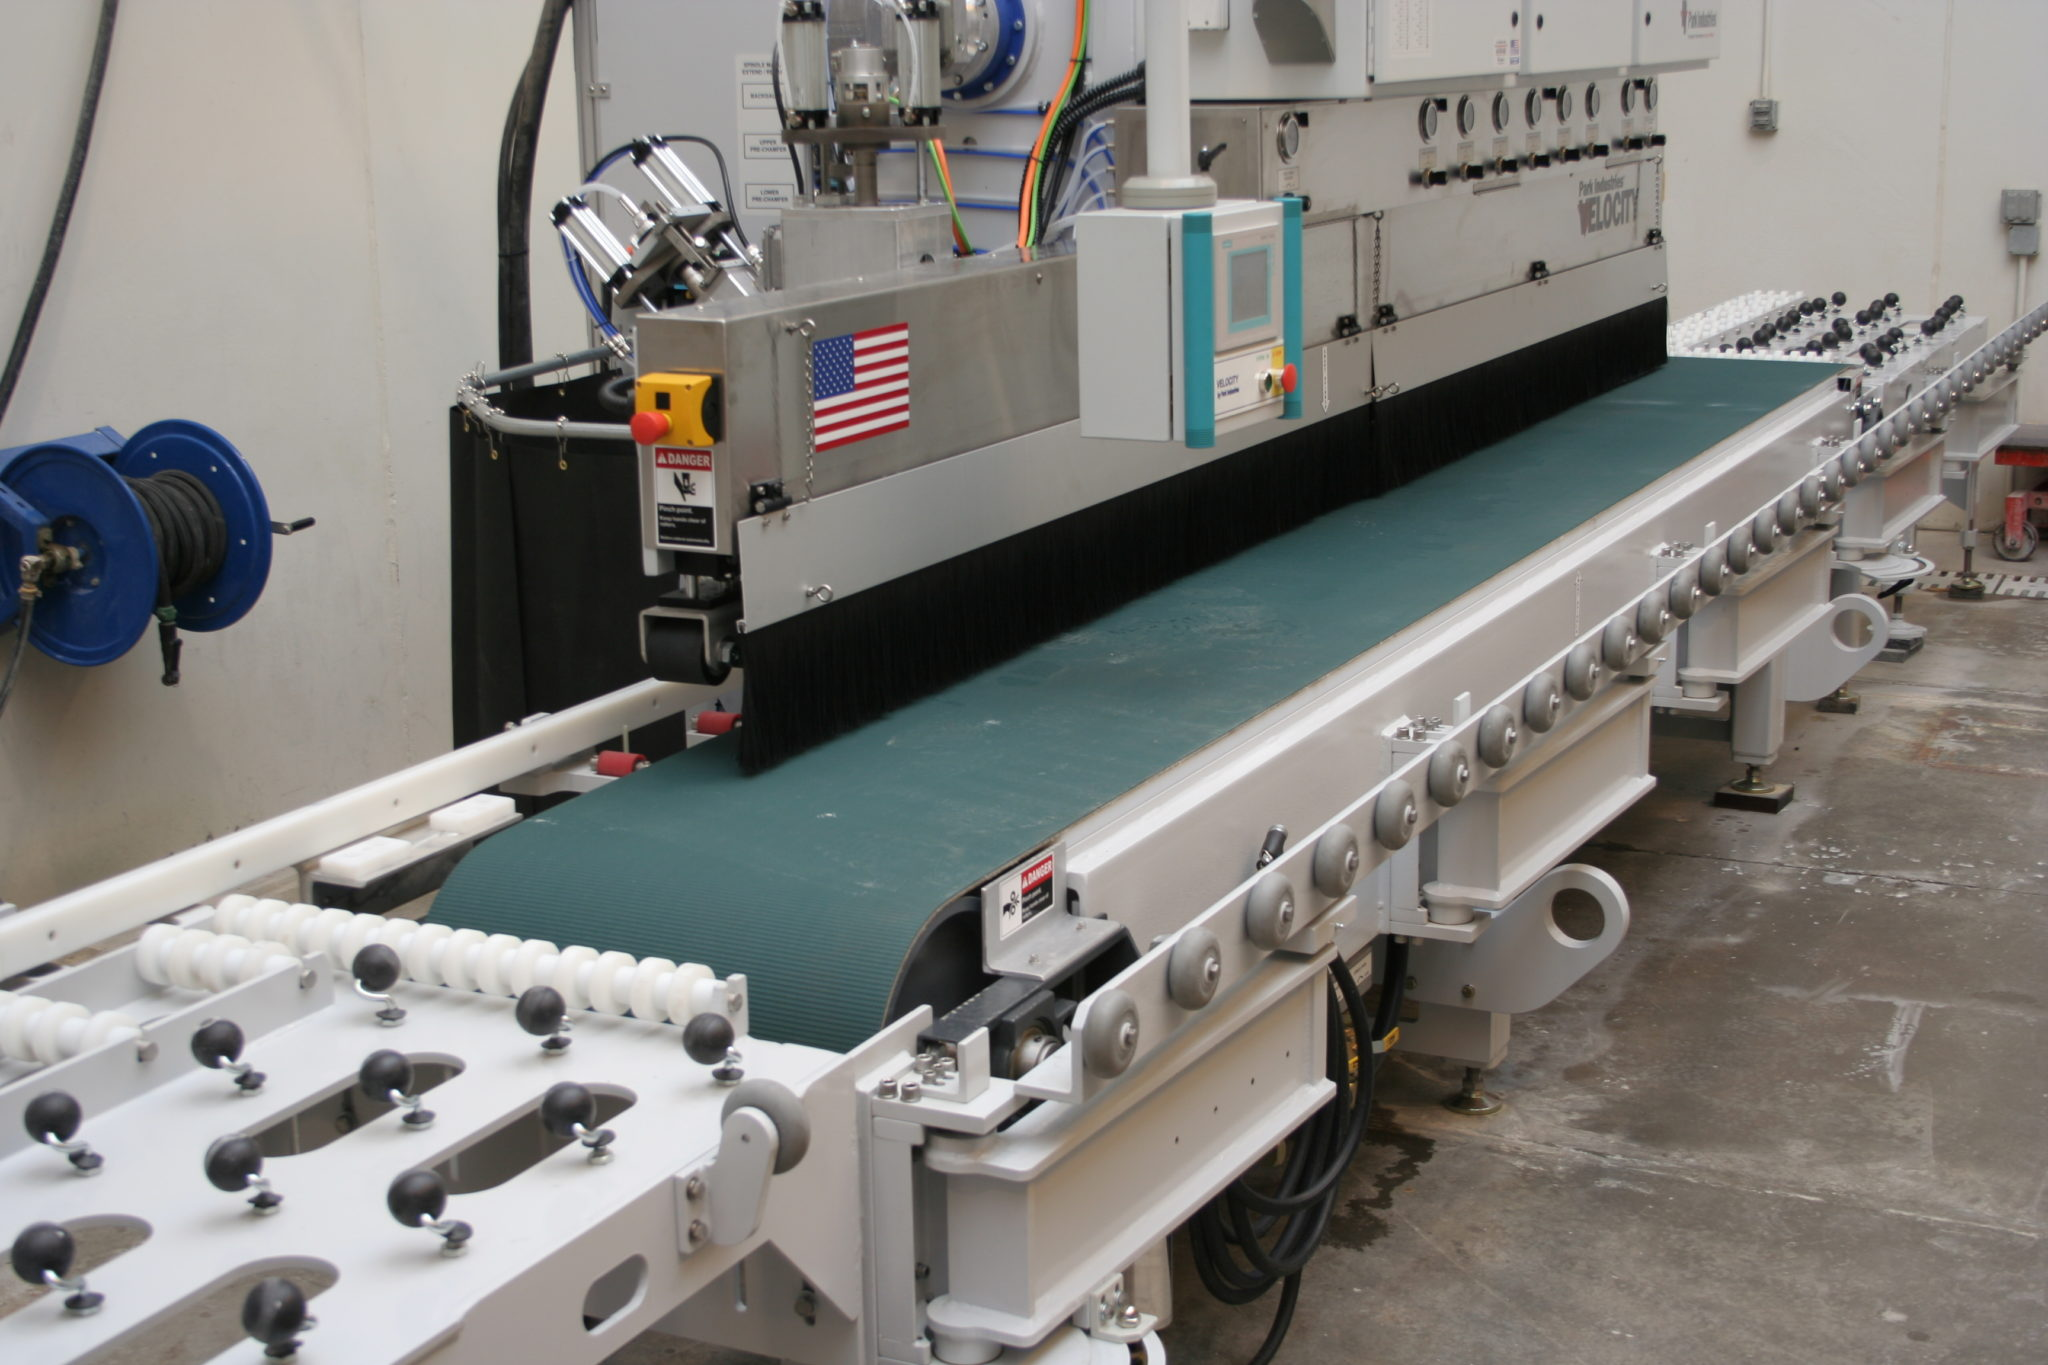 VELOCITY Edge Shaper and Polisher for Stone Countertop Fabrication from Park Industries